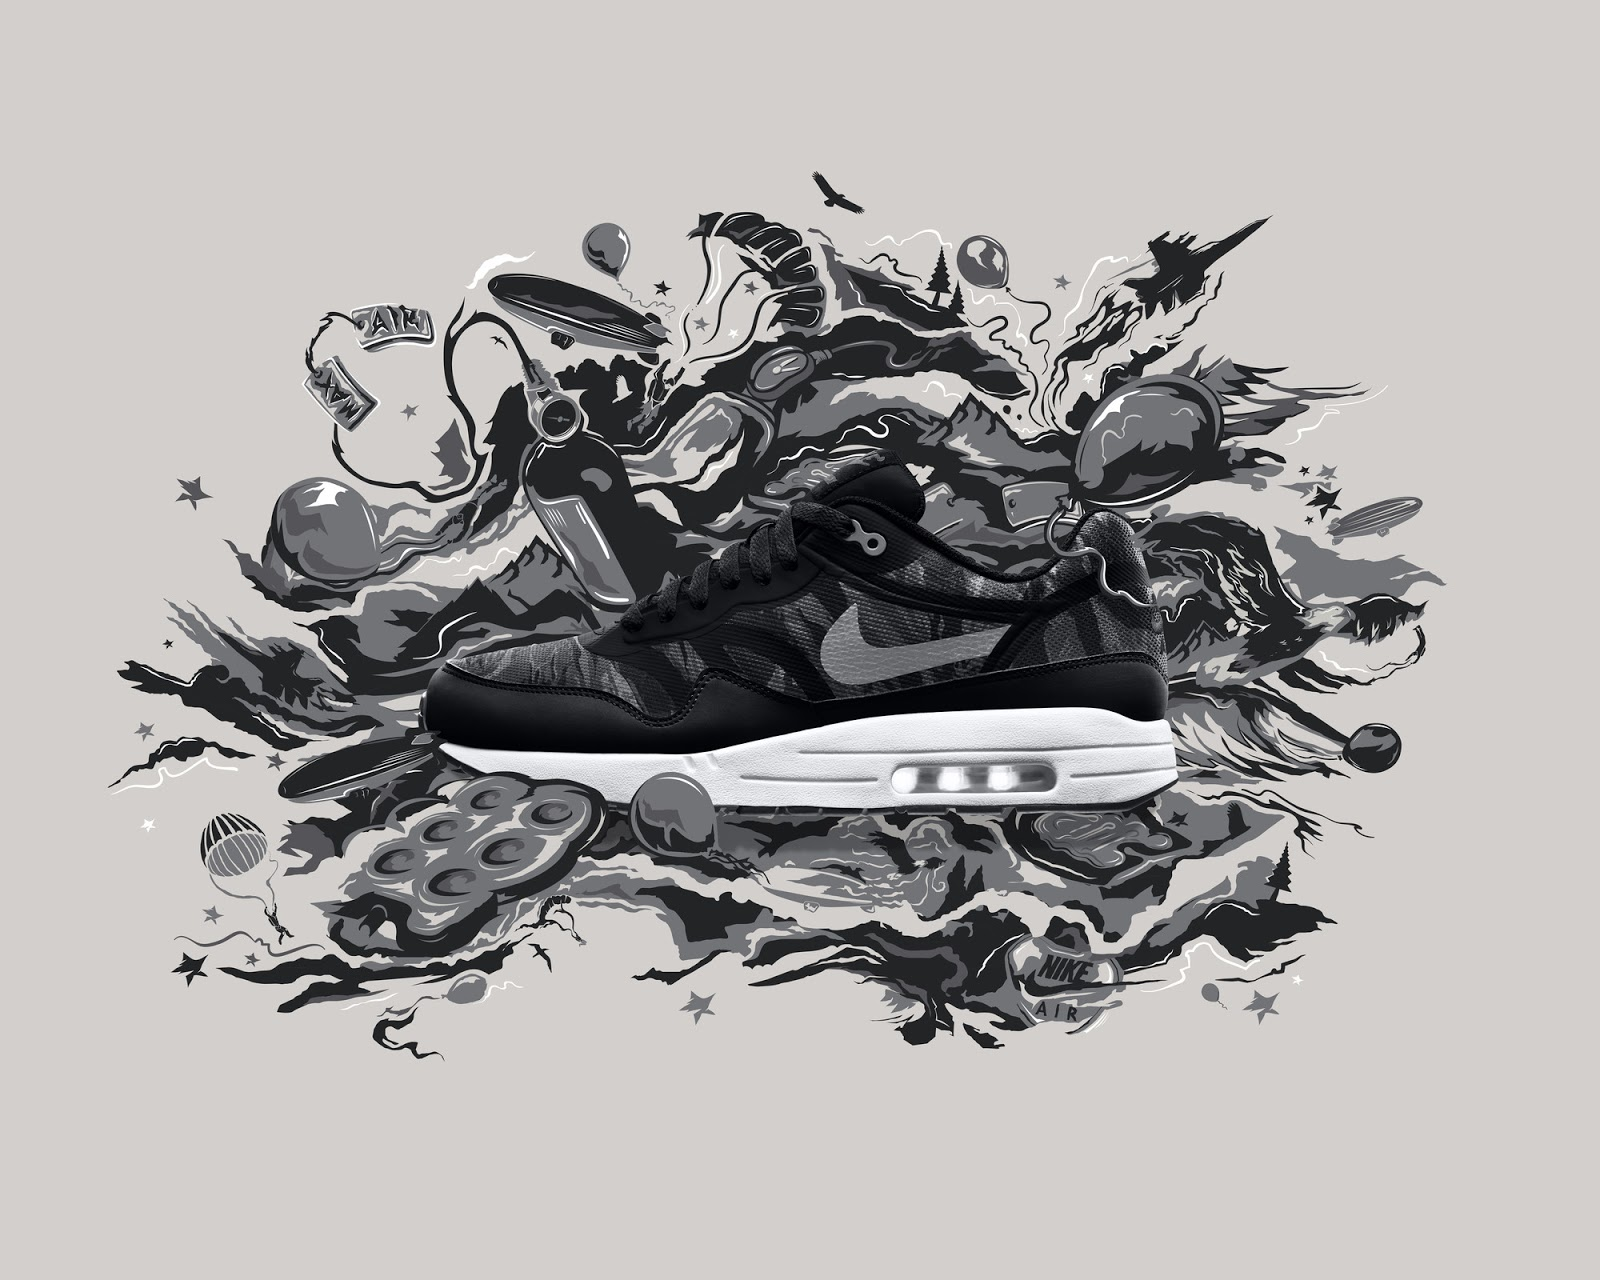 reputable site 05d96 b53c9 Nike presents the Air Max Premium Tape Collection.